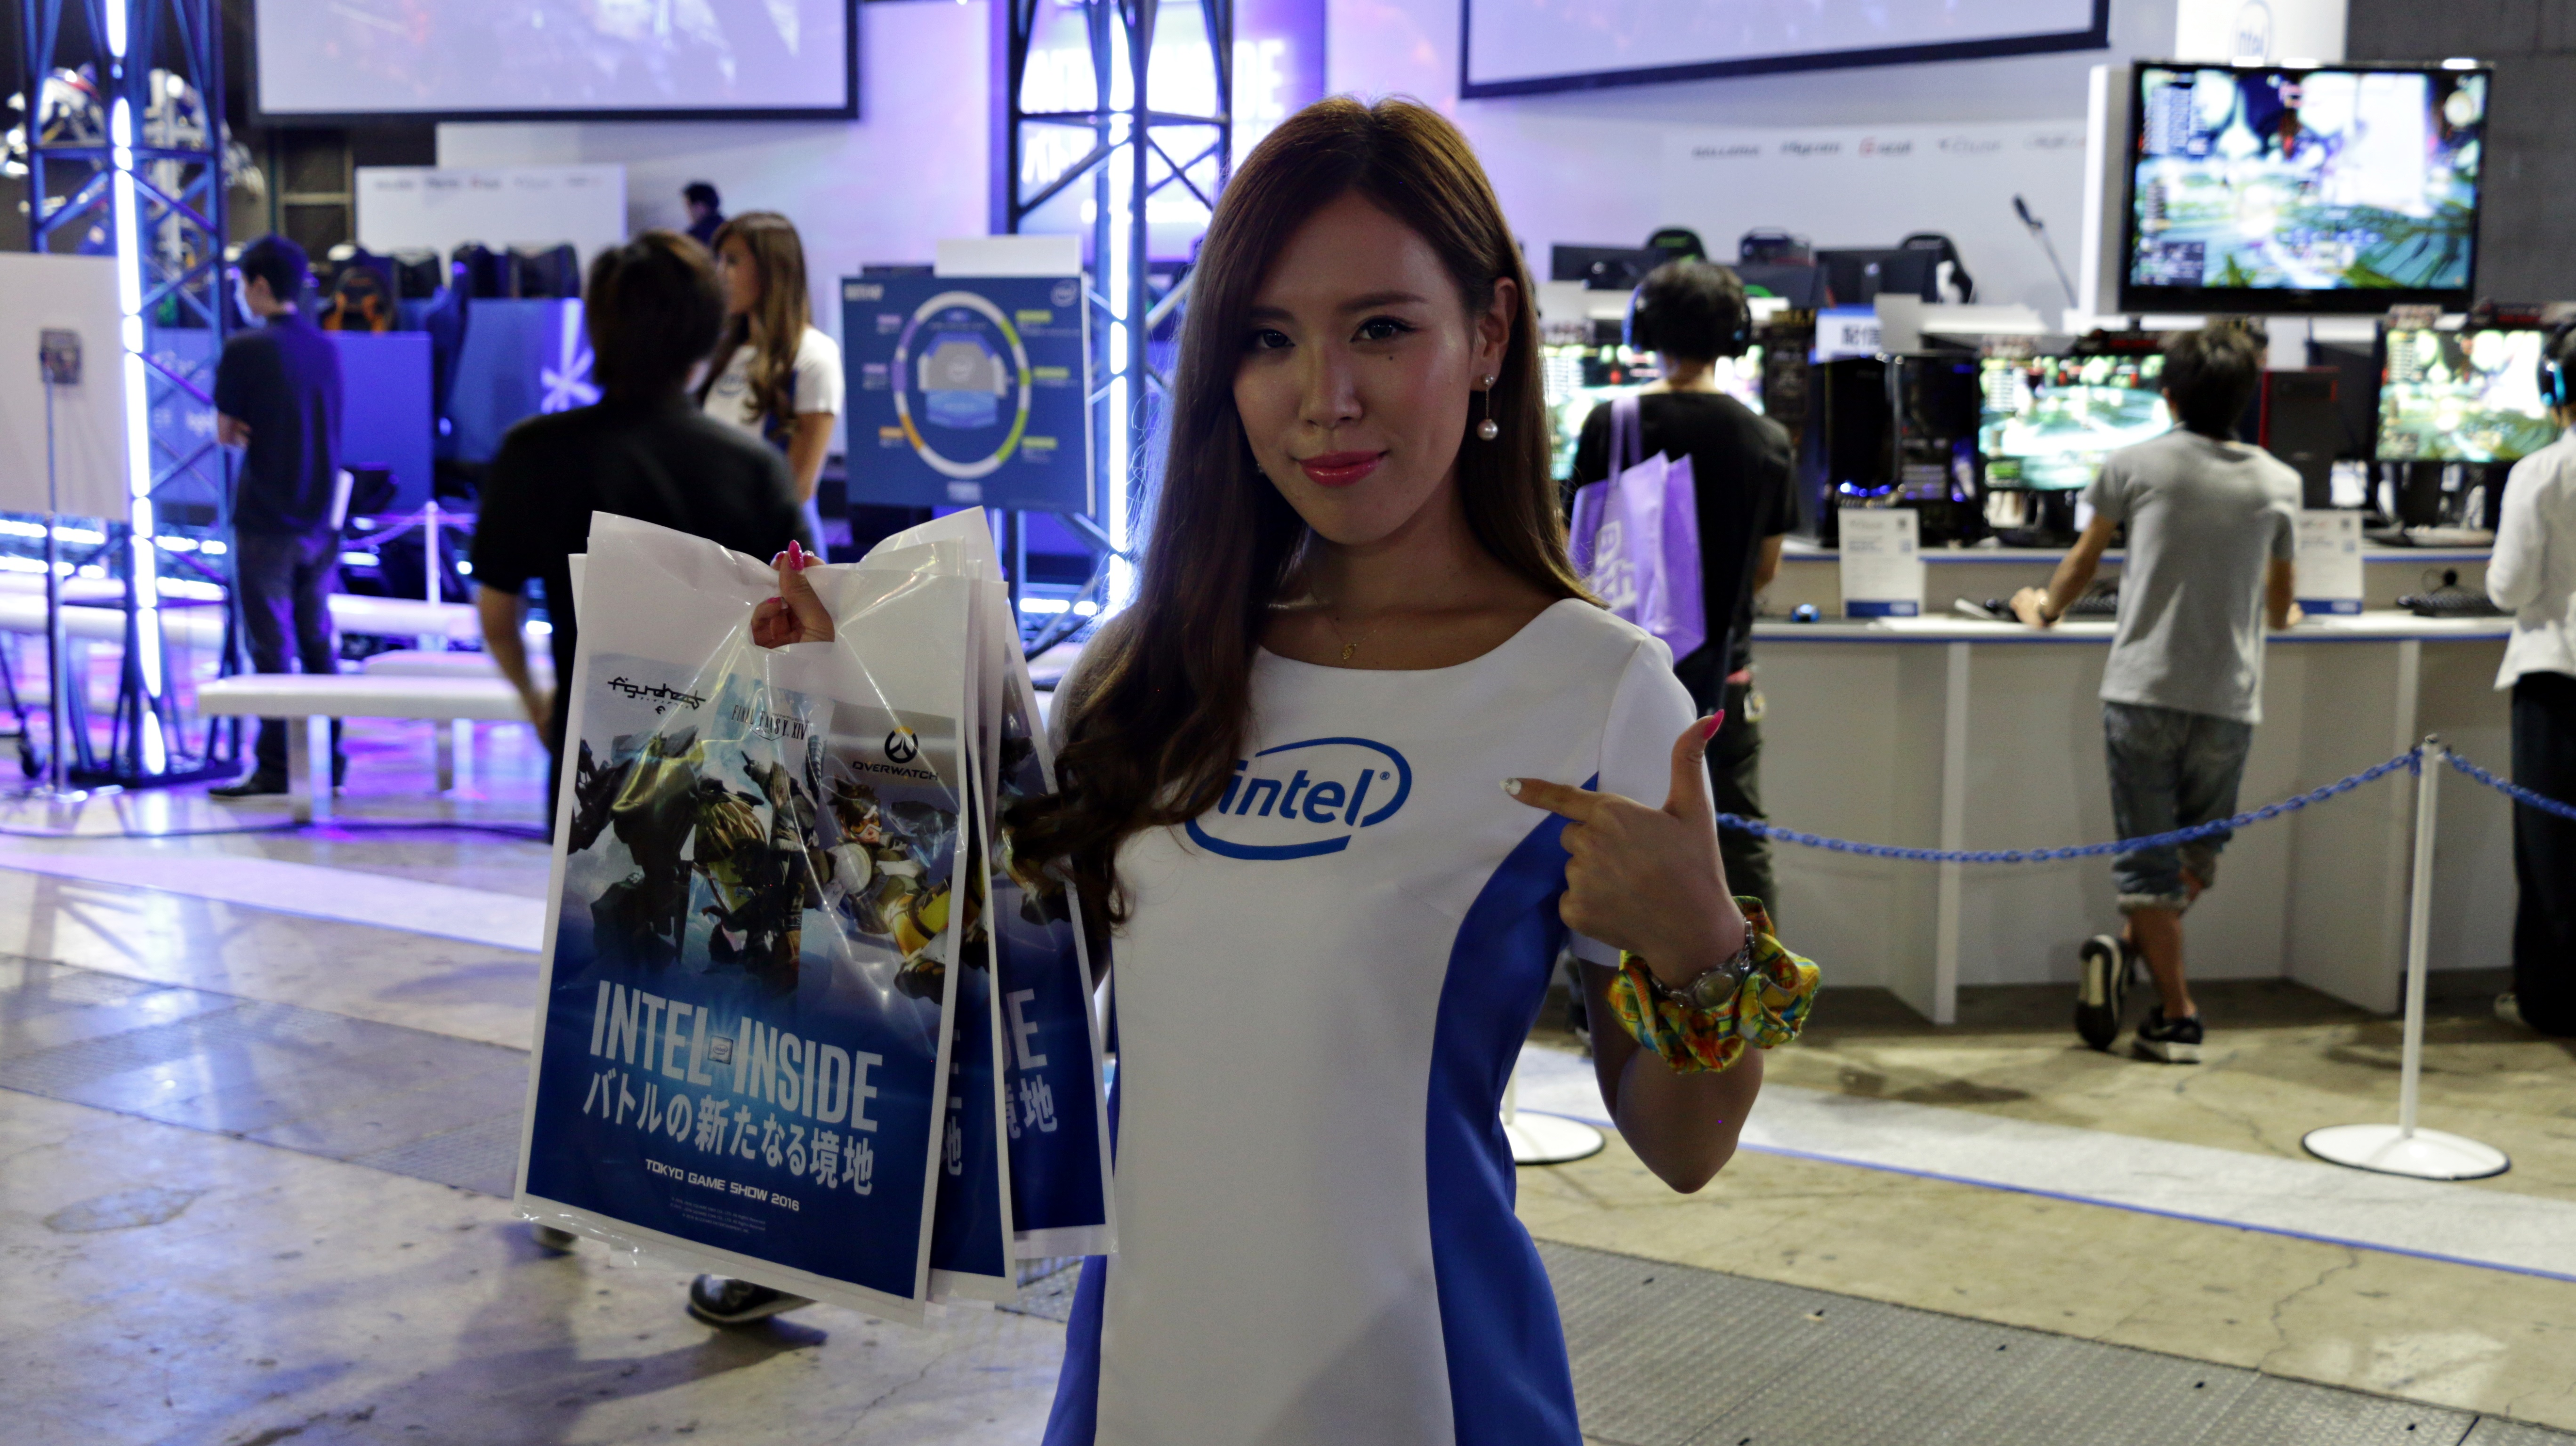 Intel Booth Babe TGS 2016